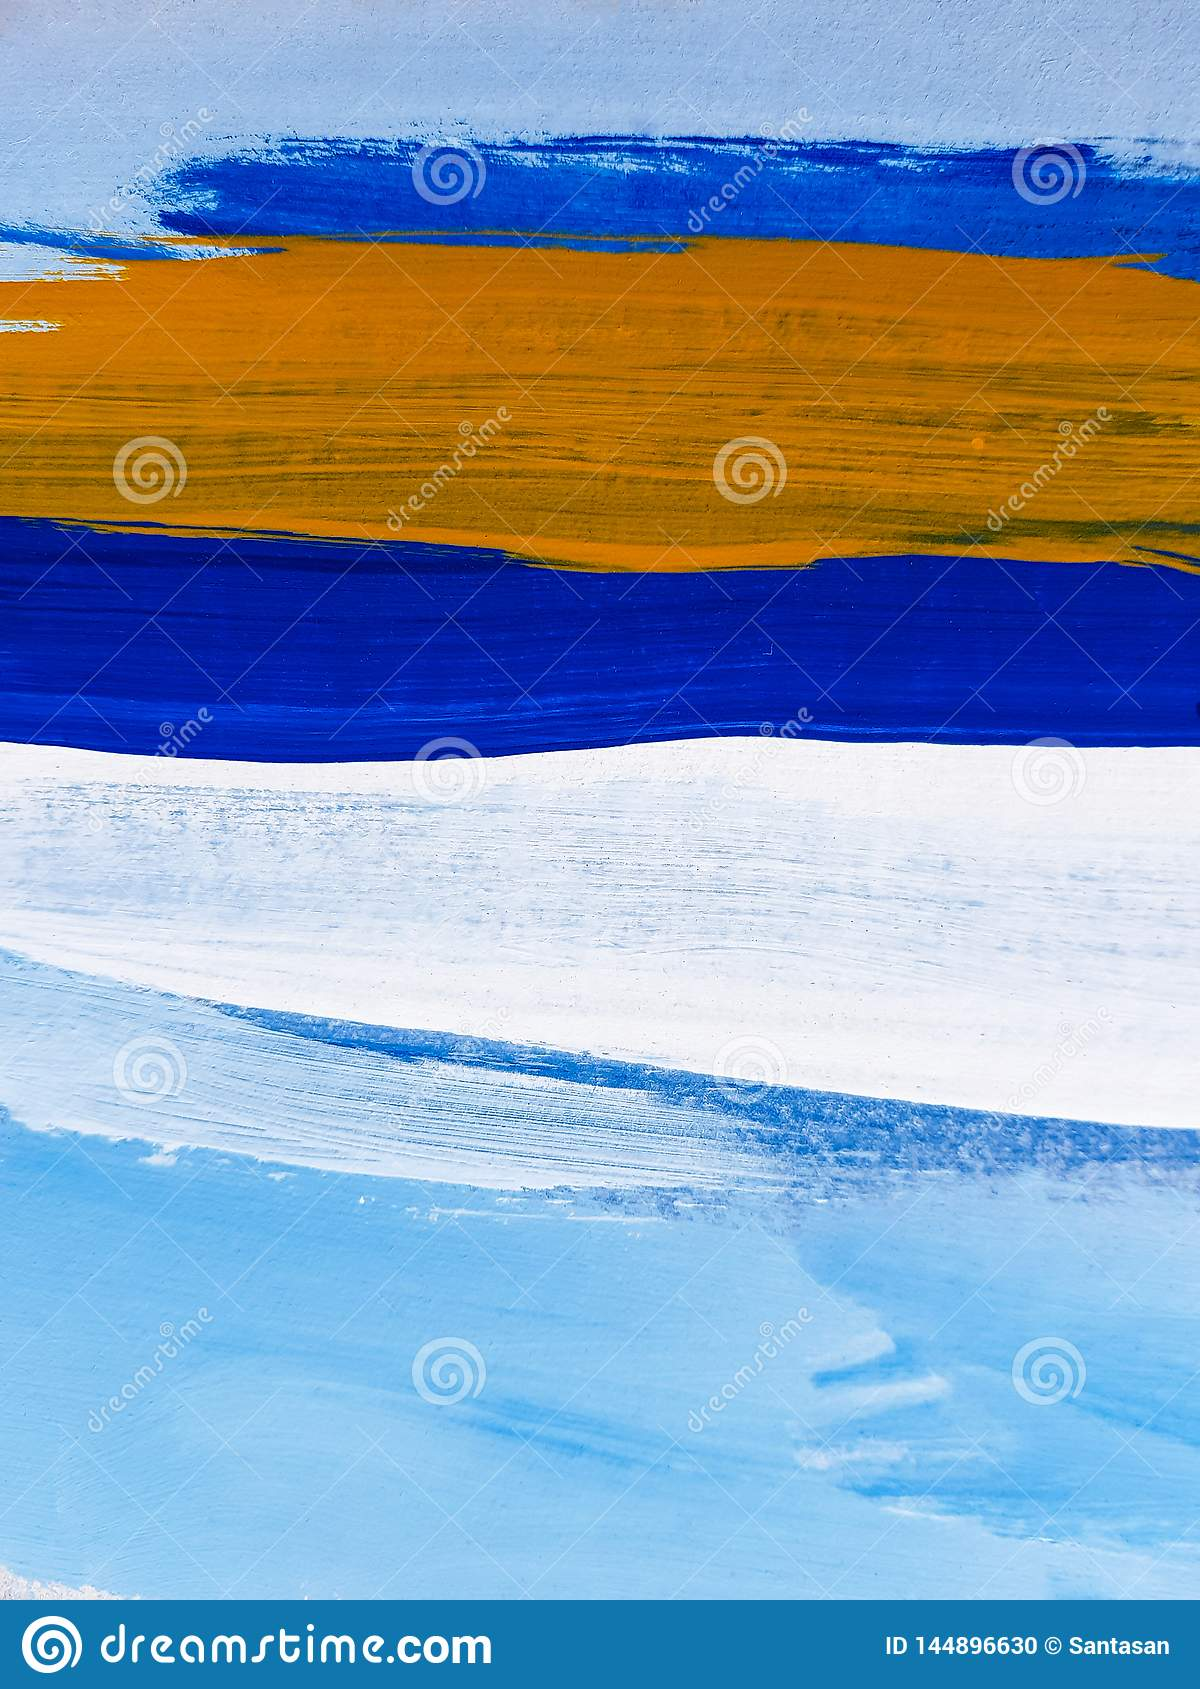 Abstract Landscape Art Painting Background. Modern art.